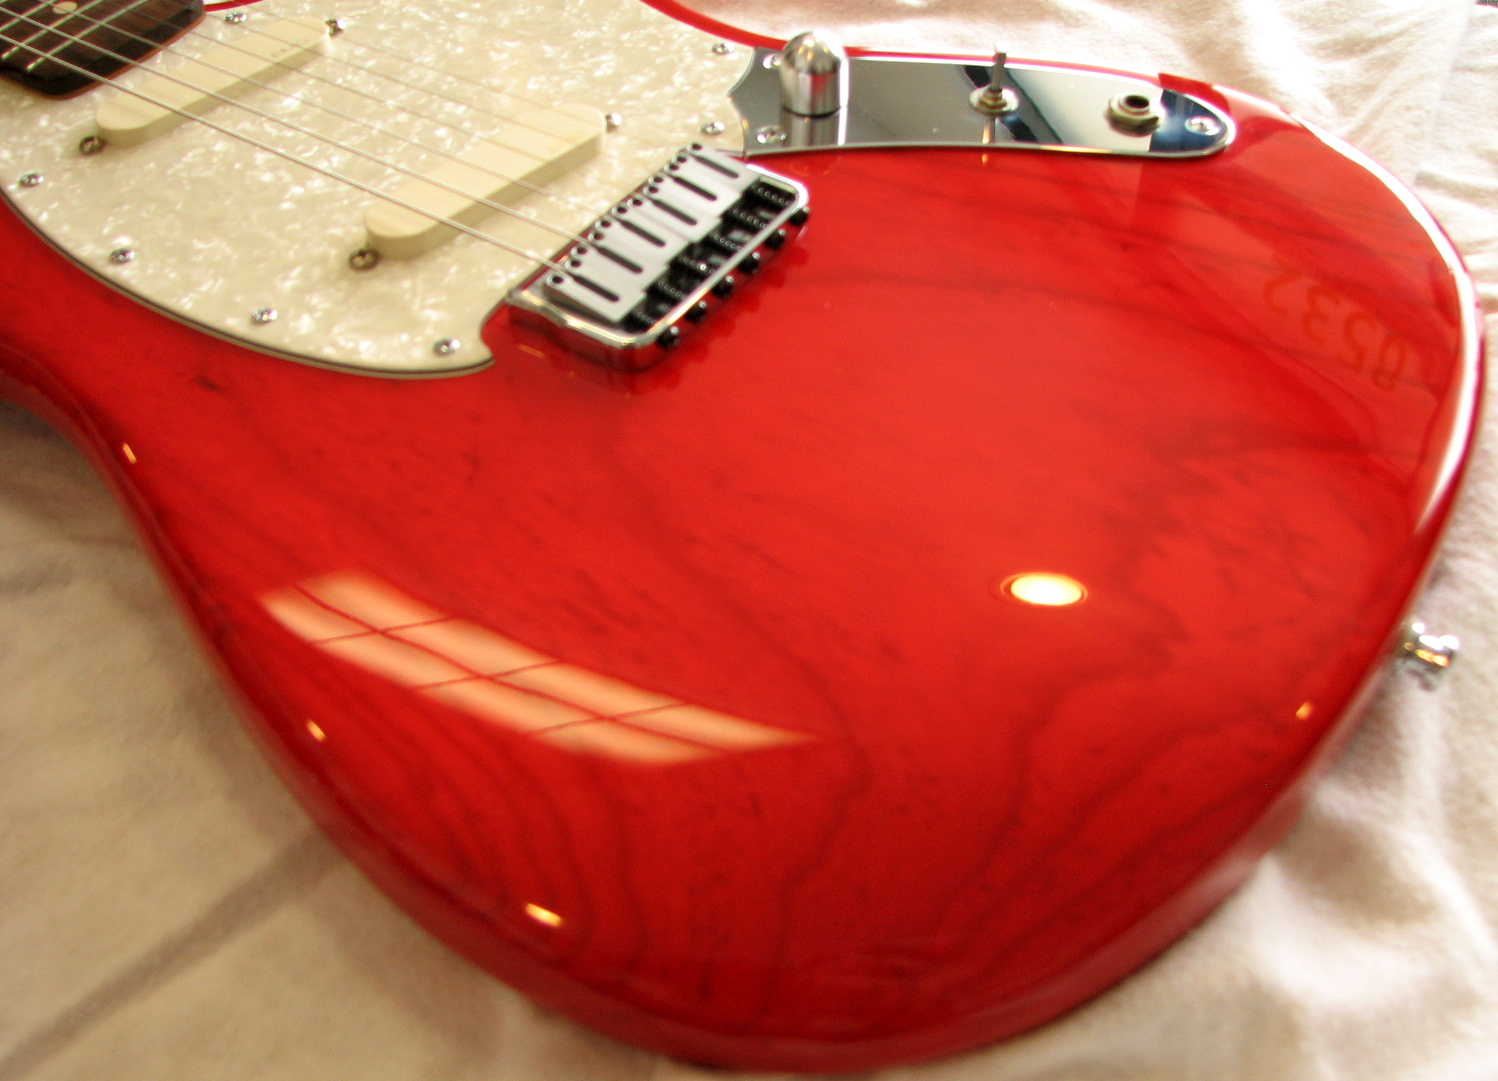 It features active EMG pickups for super-clean tone